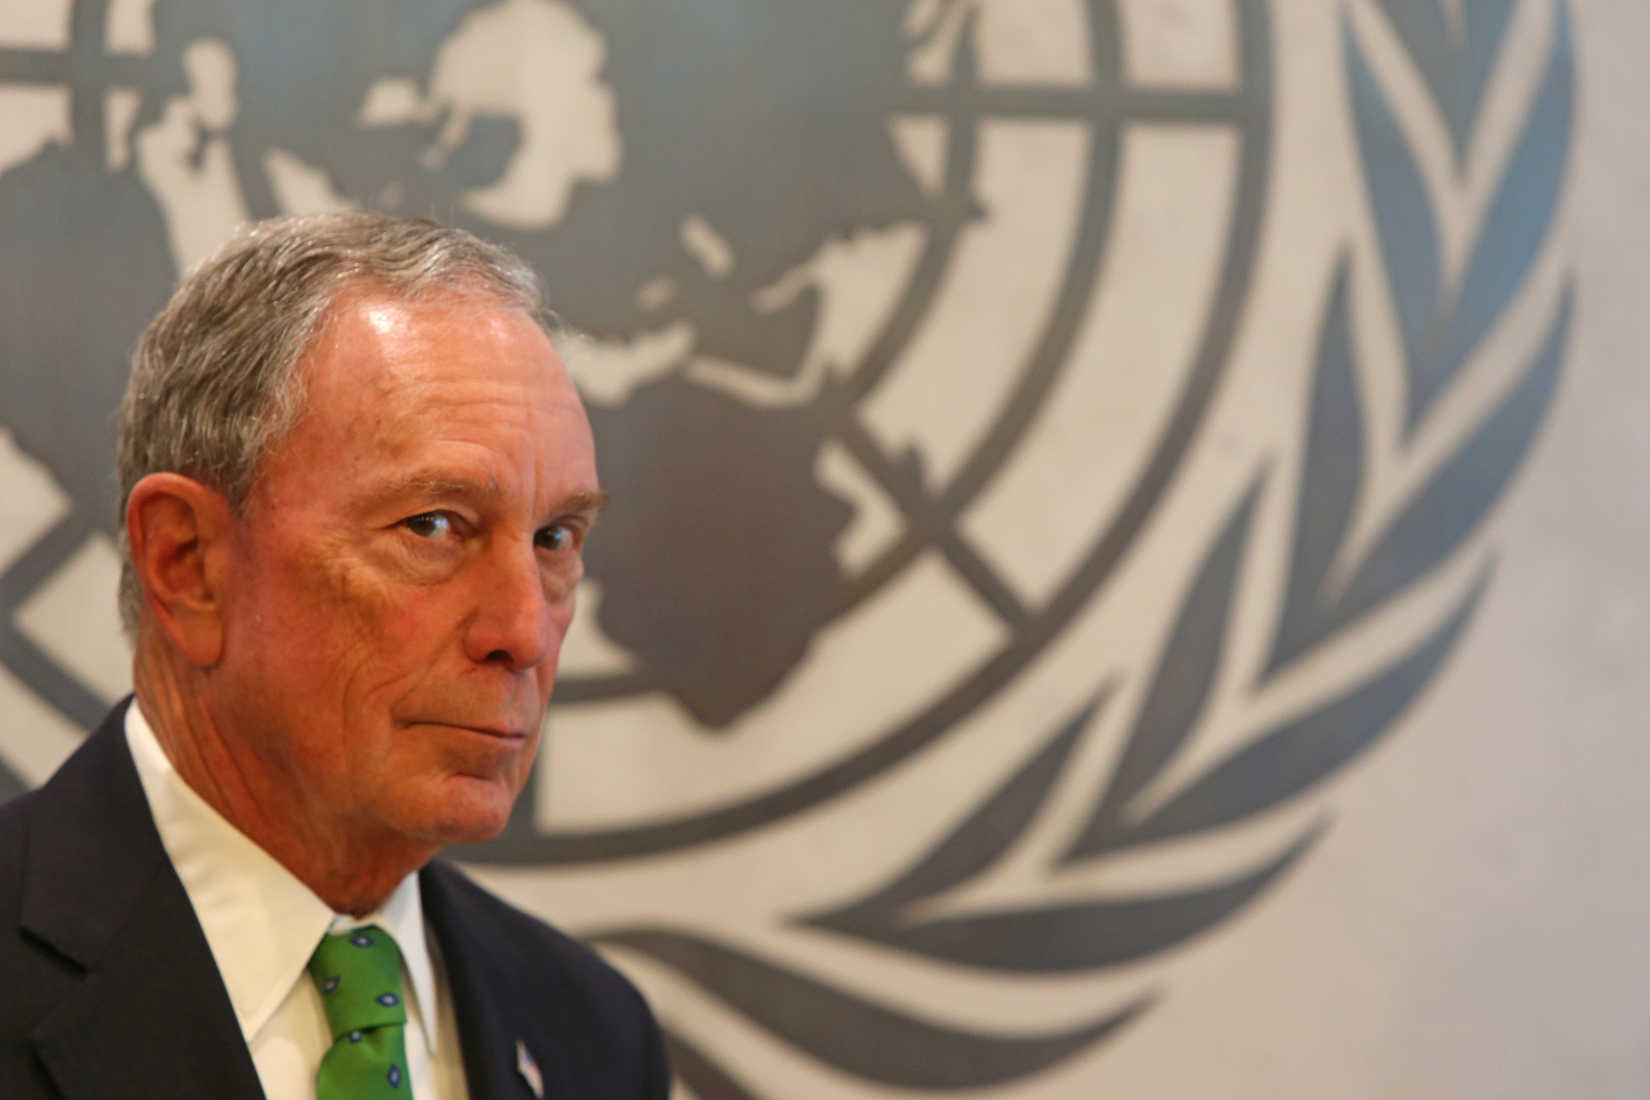 Bloomberg Unveils Plan for Extreme Gun Control if Elected President